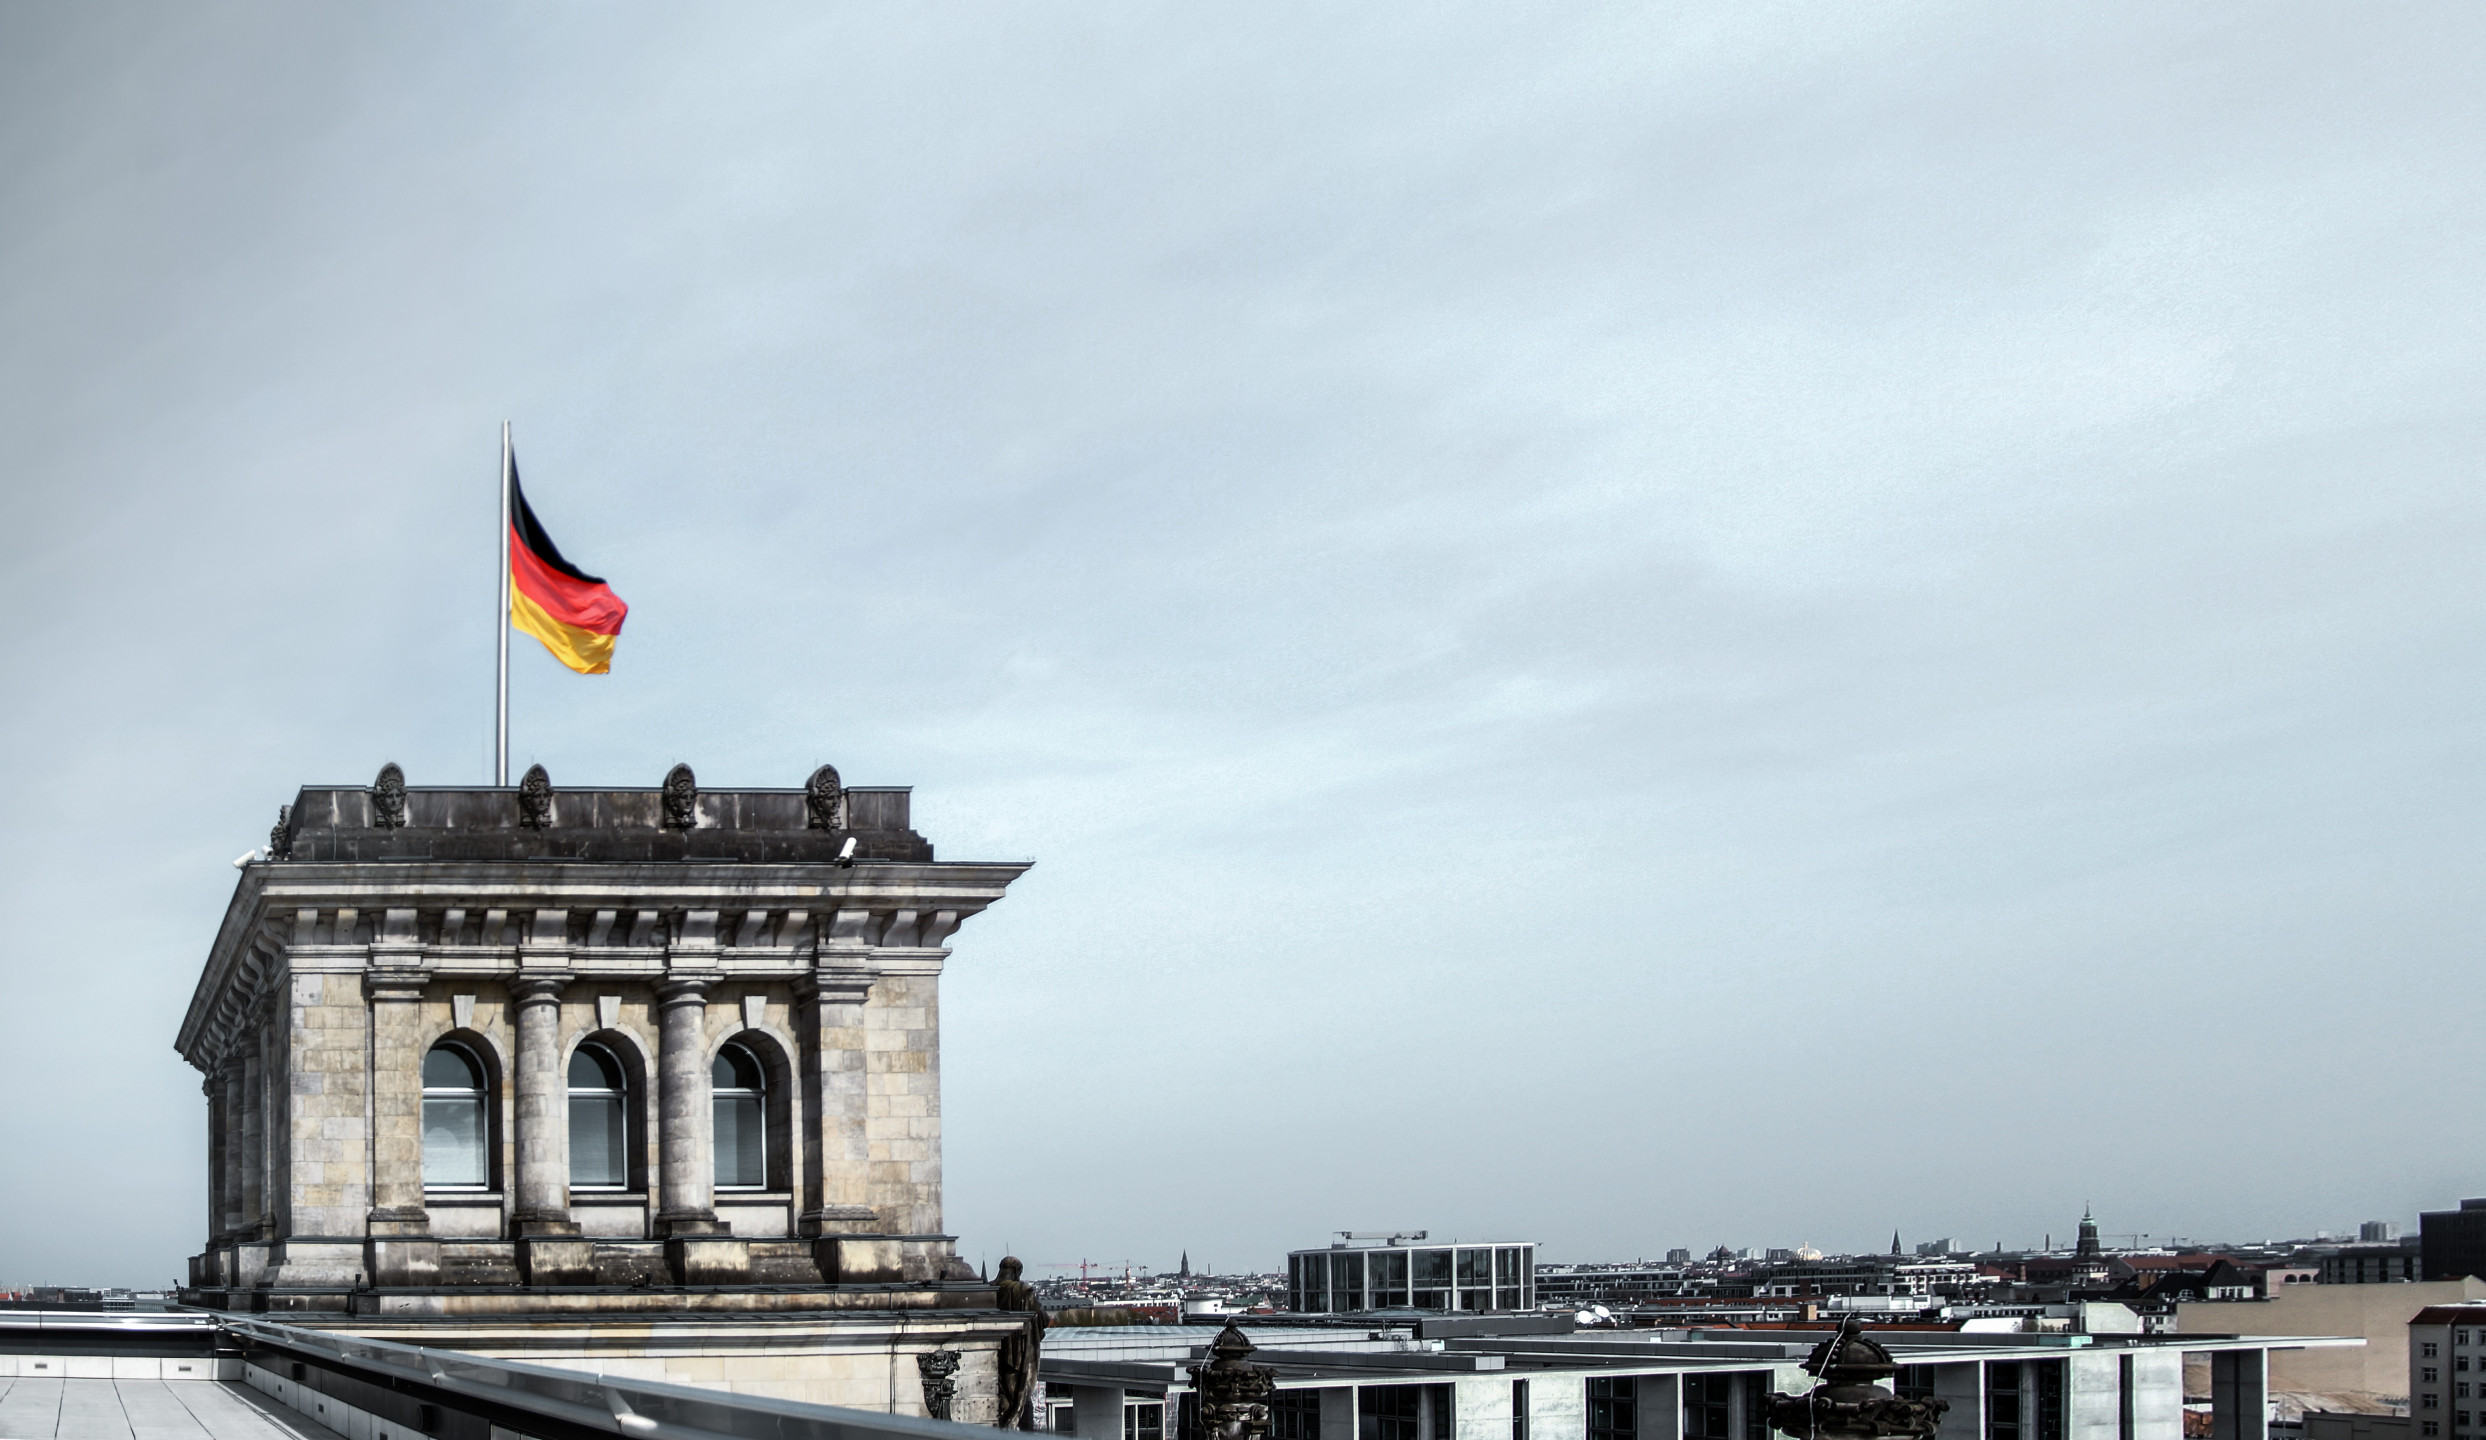 German Bank forecasts Bitcoin price rise to $90000 after 2020 halving